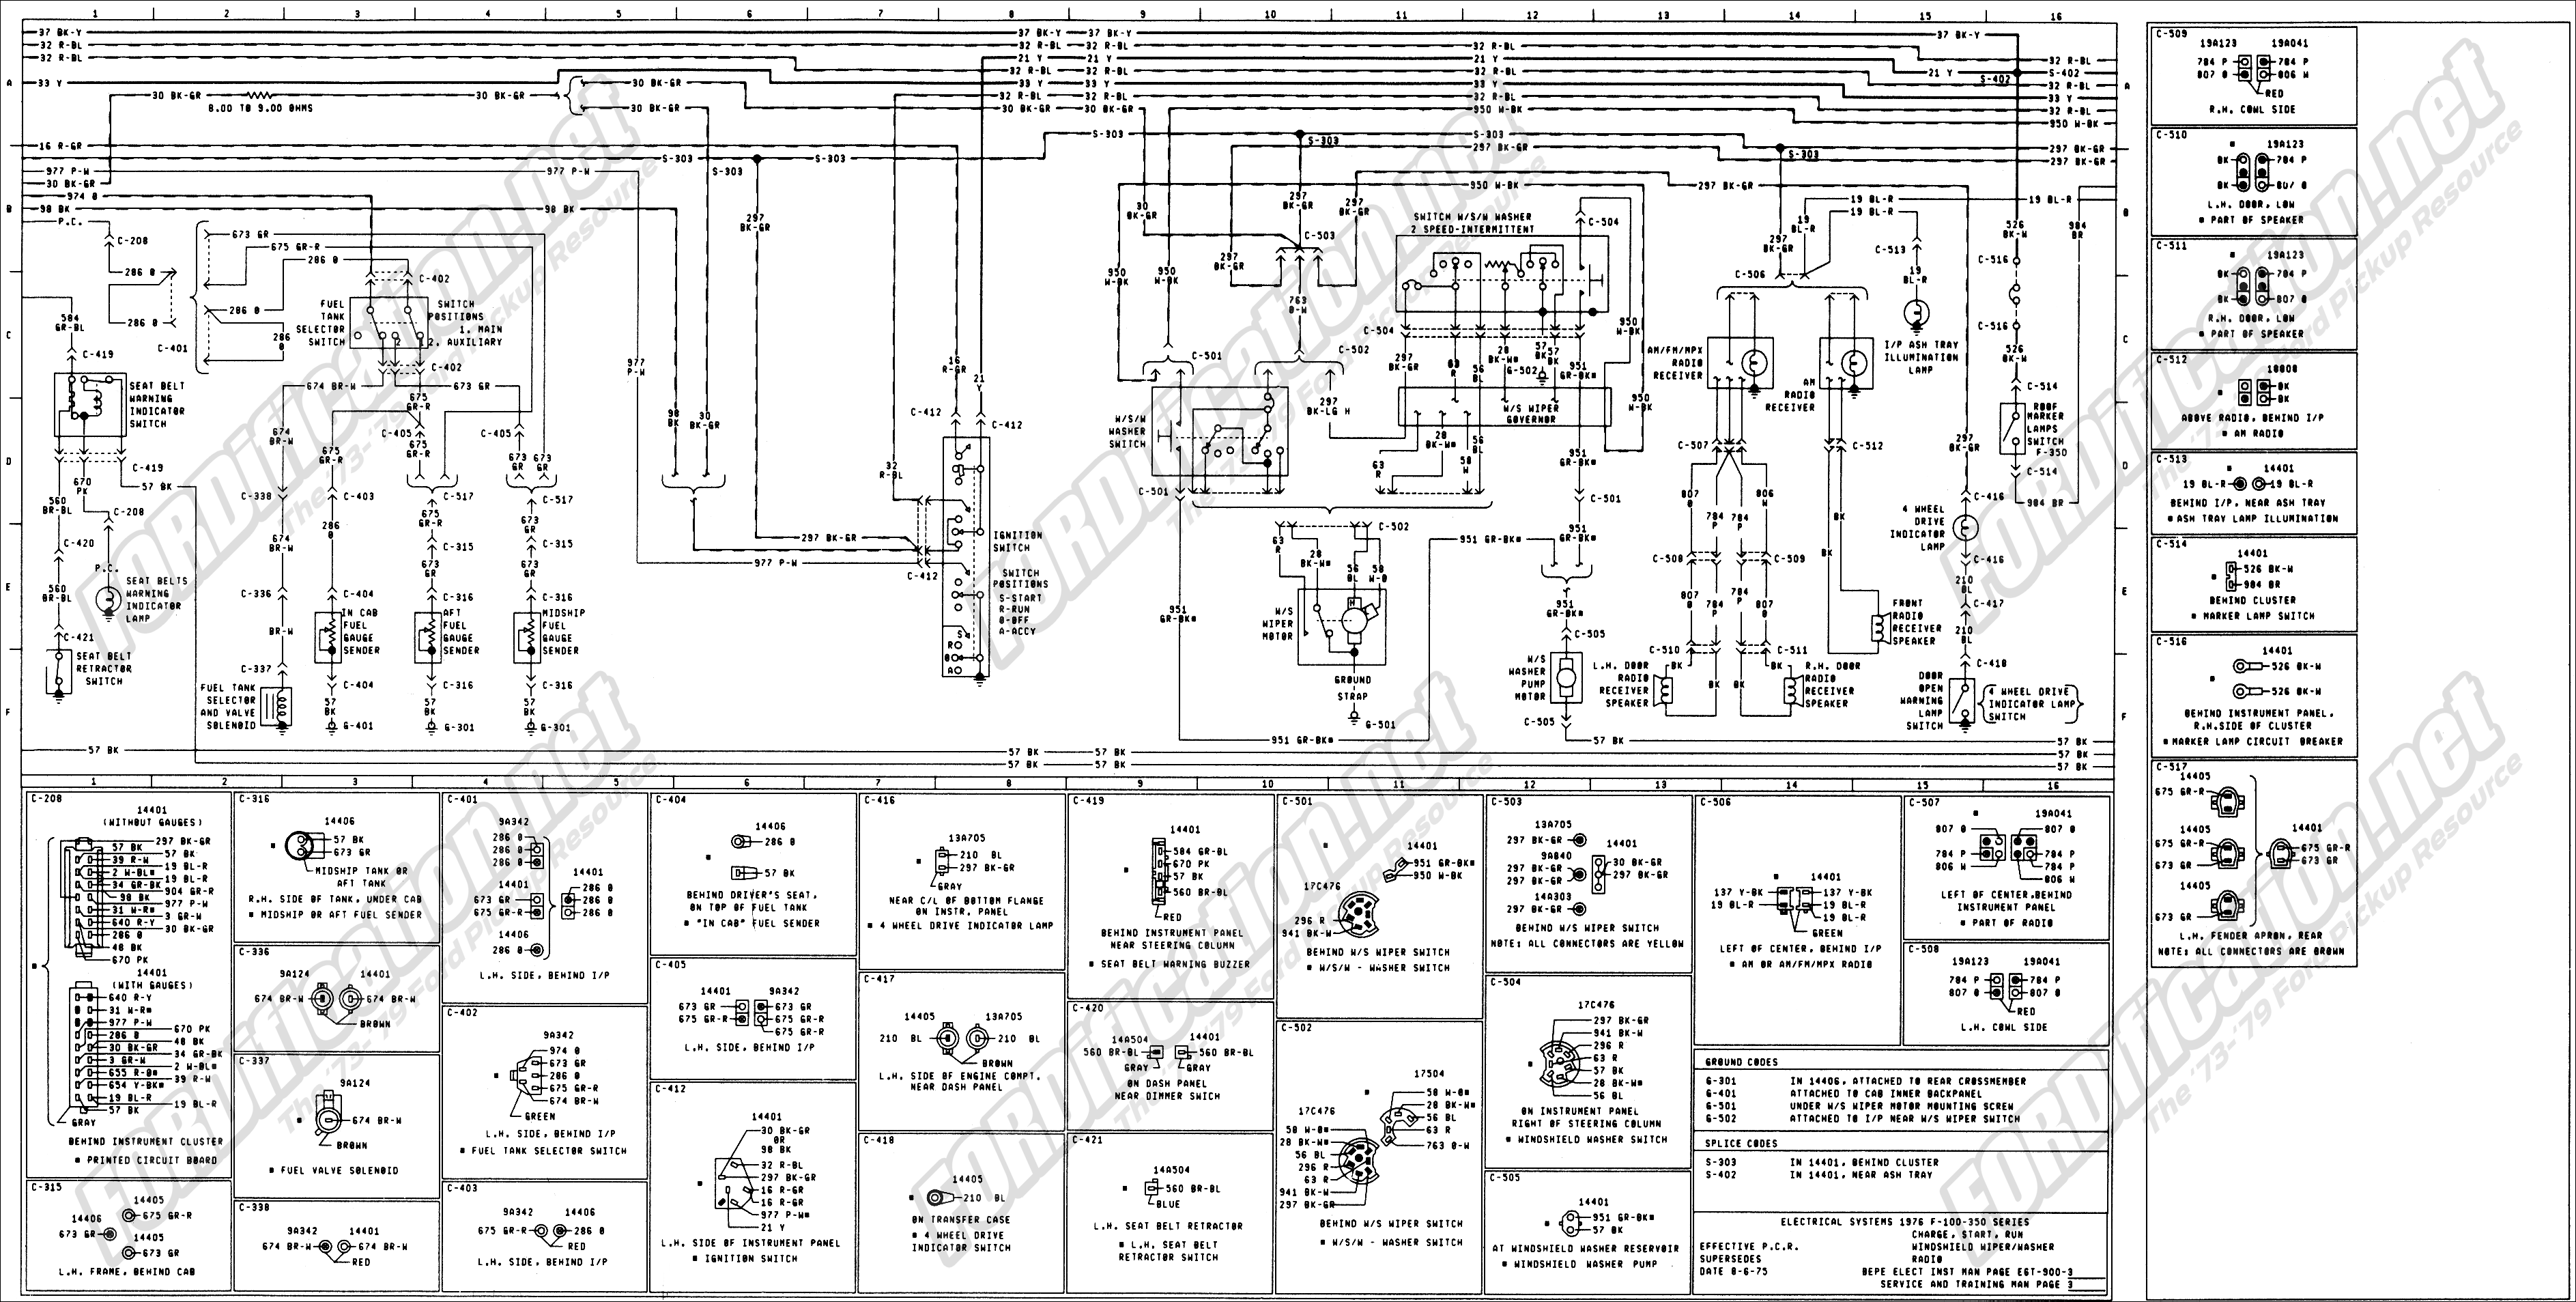 2002 Ford E350 Wiring Diagrams Simple 2004 Honda Civic Radio Harness 1973 1979 Truck Schematics Fordification Net Diagram